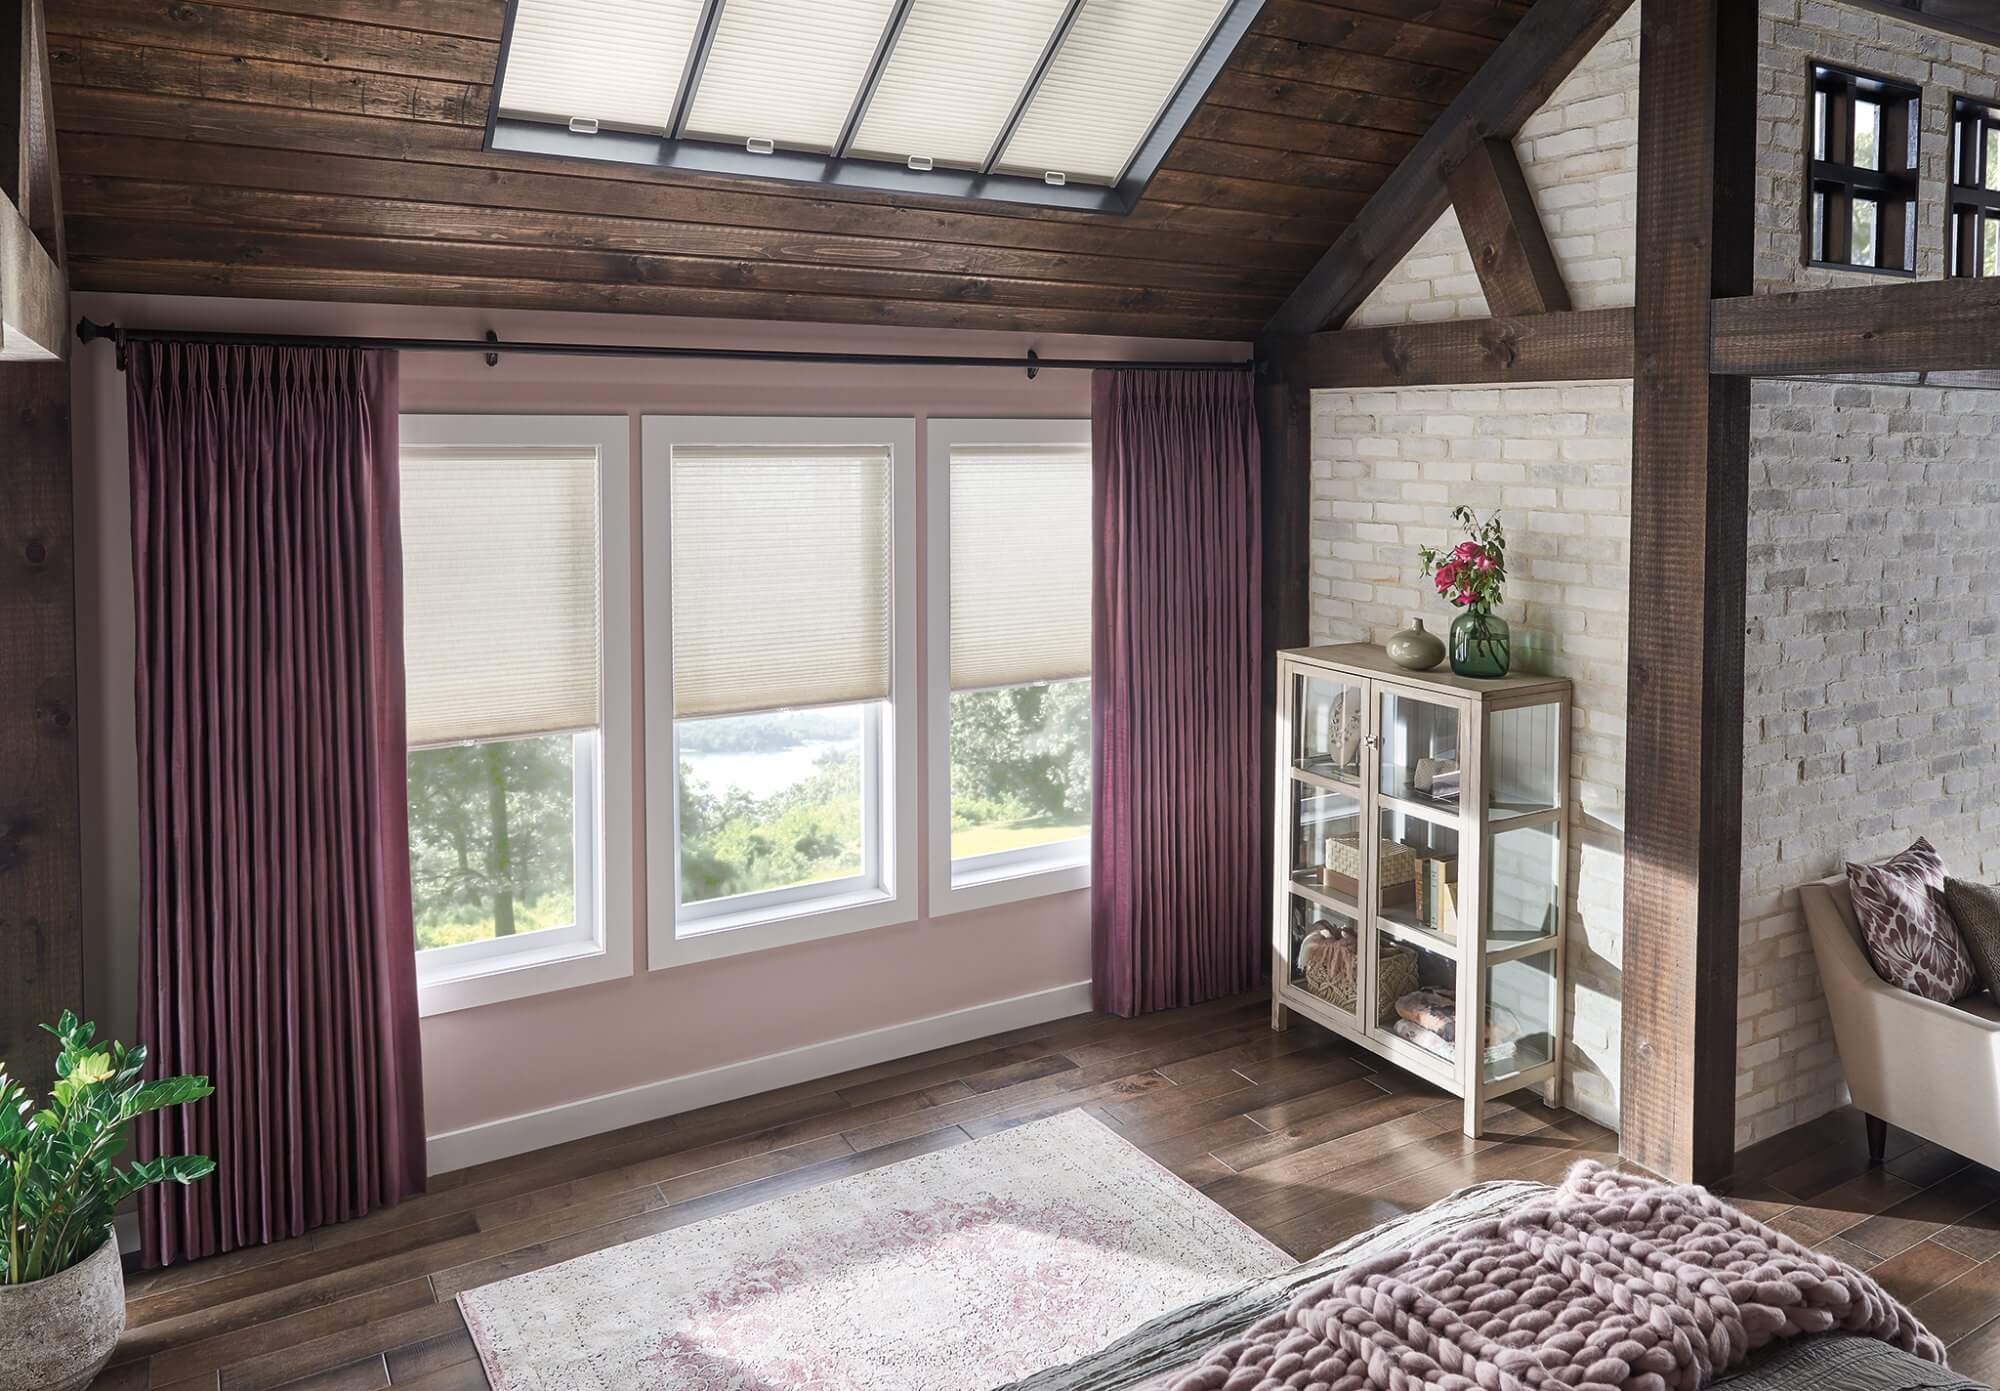 Skylights are stunning, but may need to be covered from time to time.